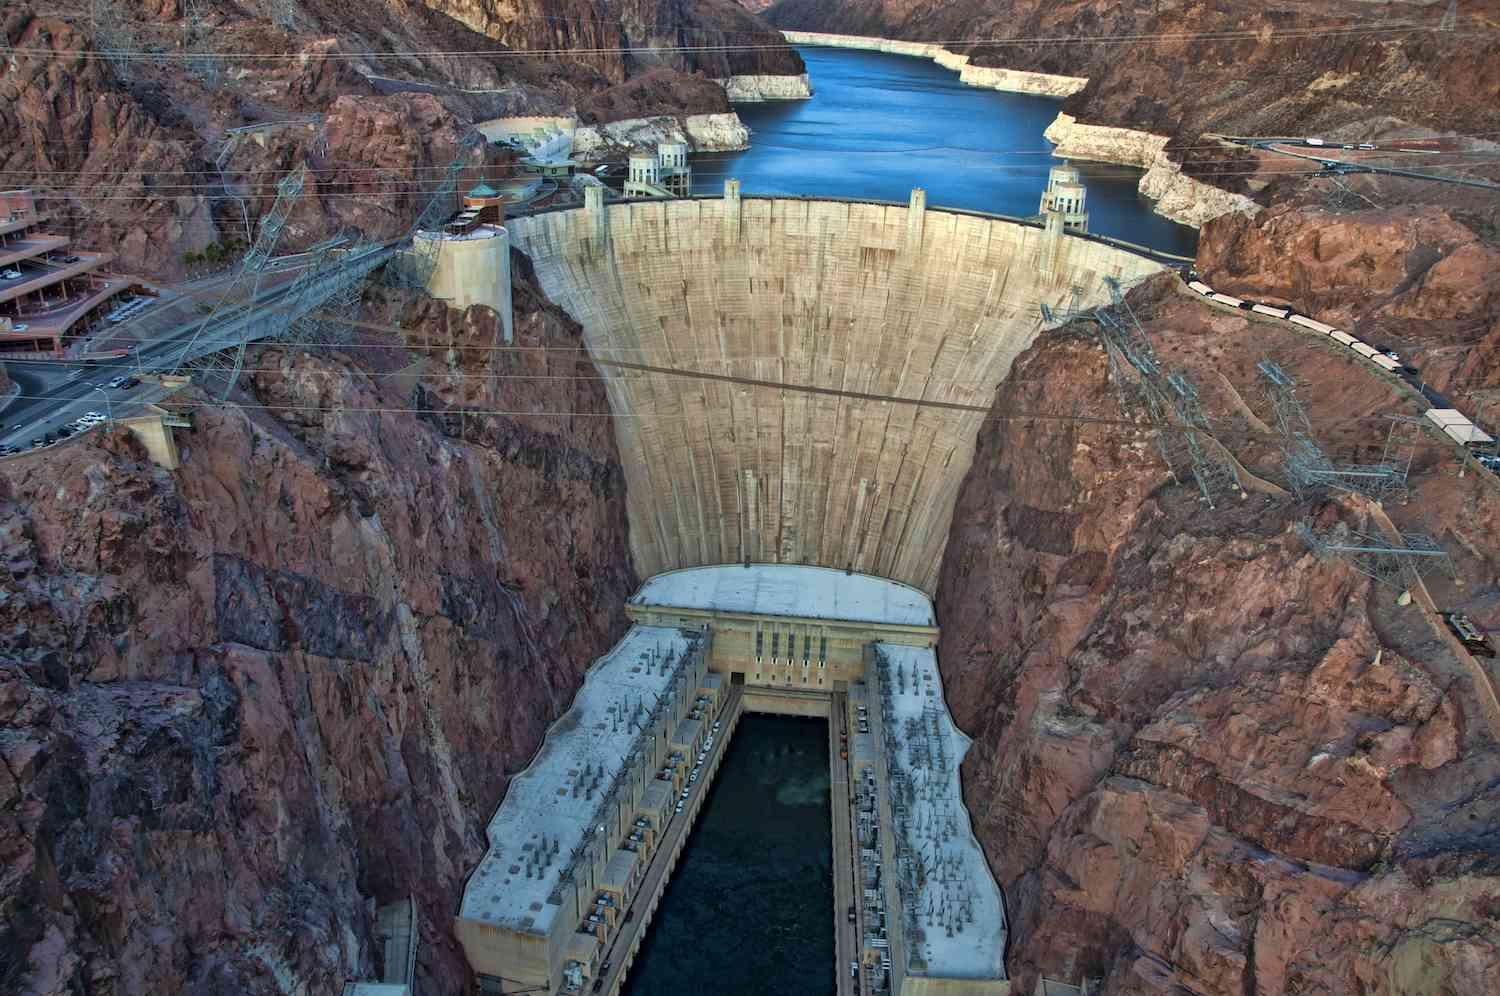 The massive concrete Hoover Dam arched between the reddish rocky landscape